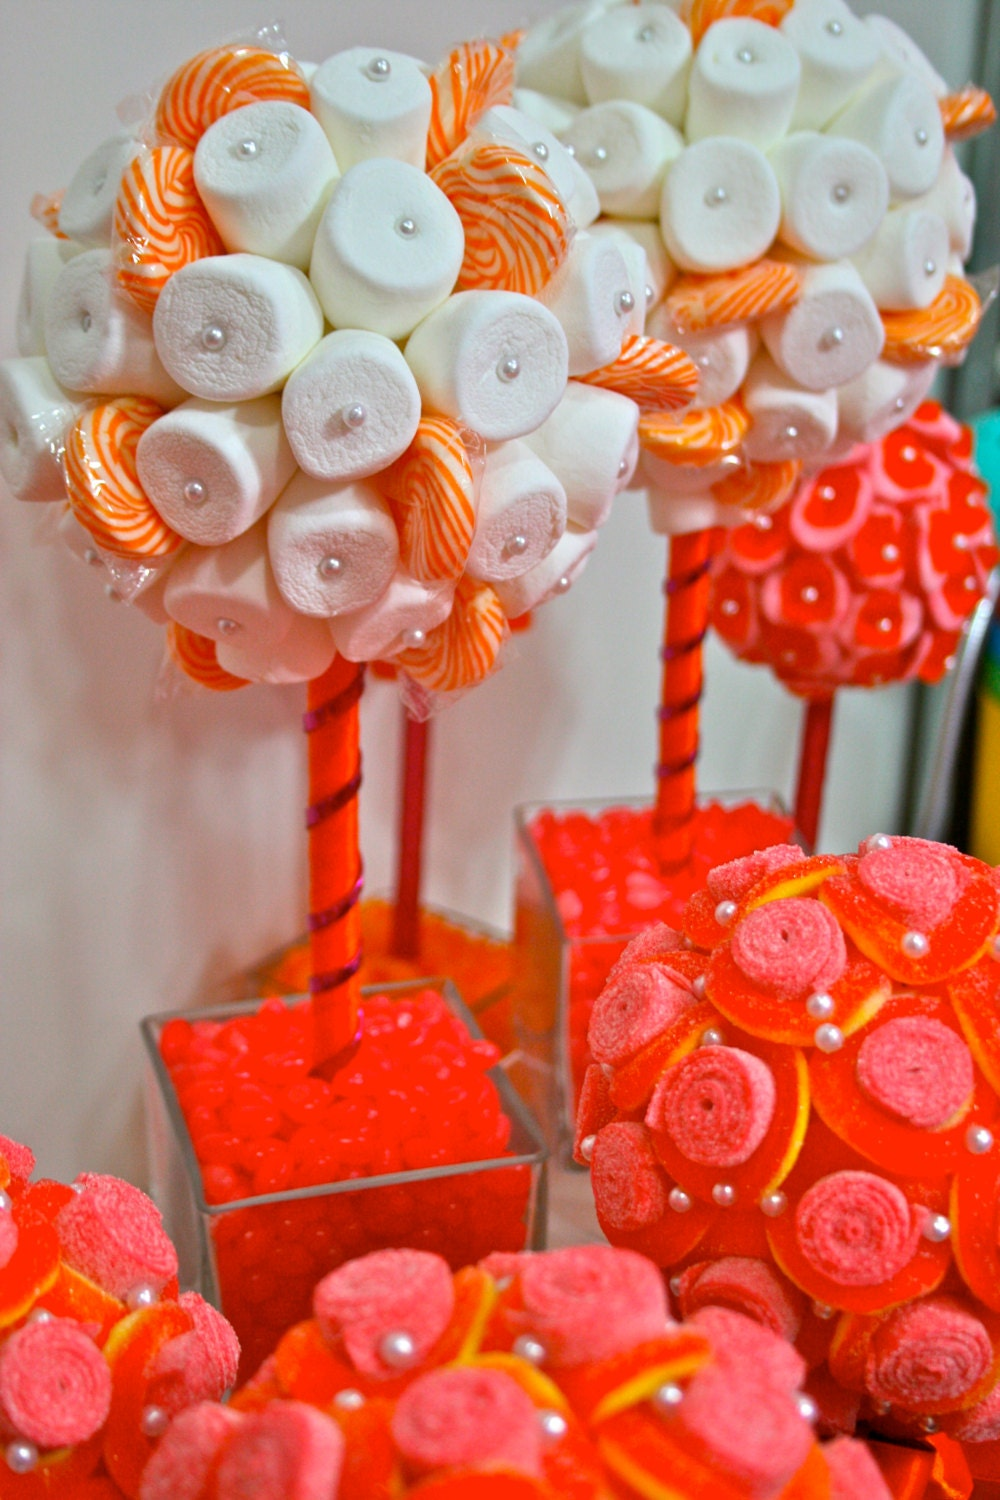 Orange fuchsia pink marshmallow lollipop candy land